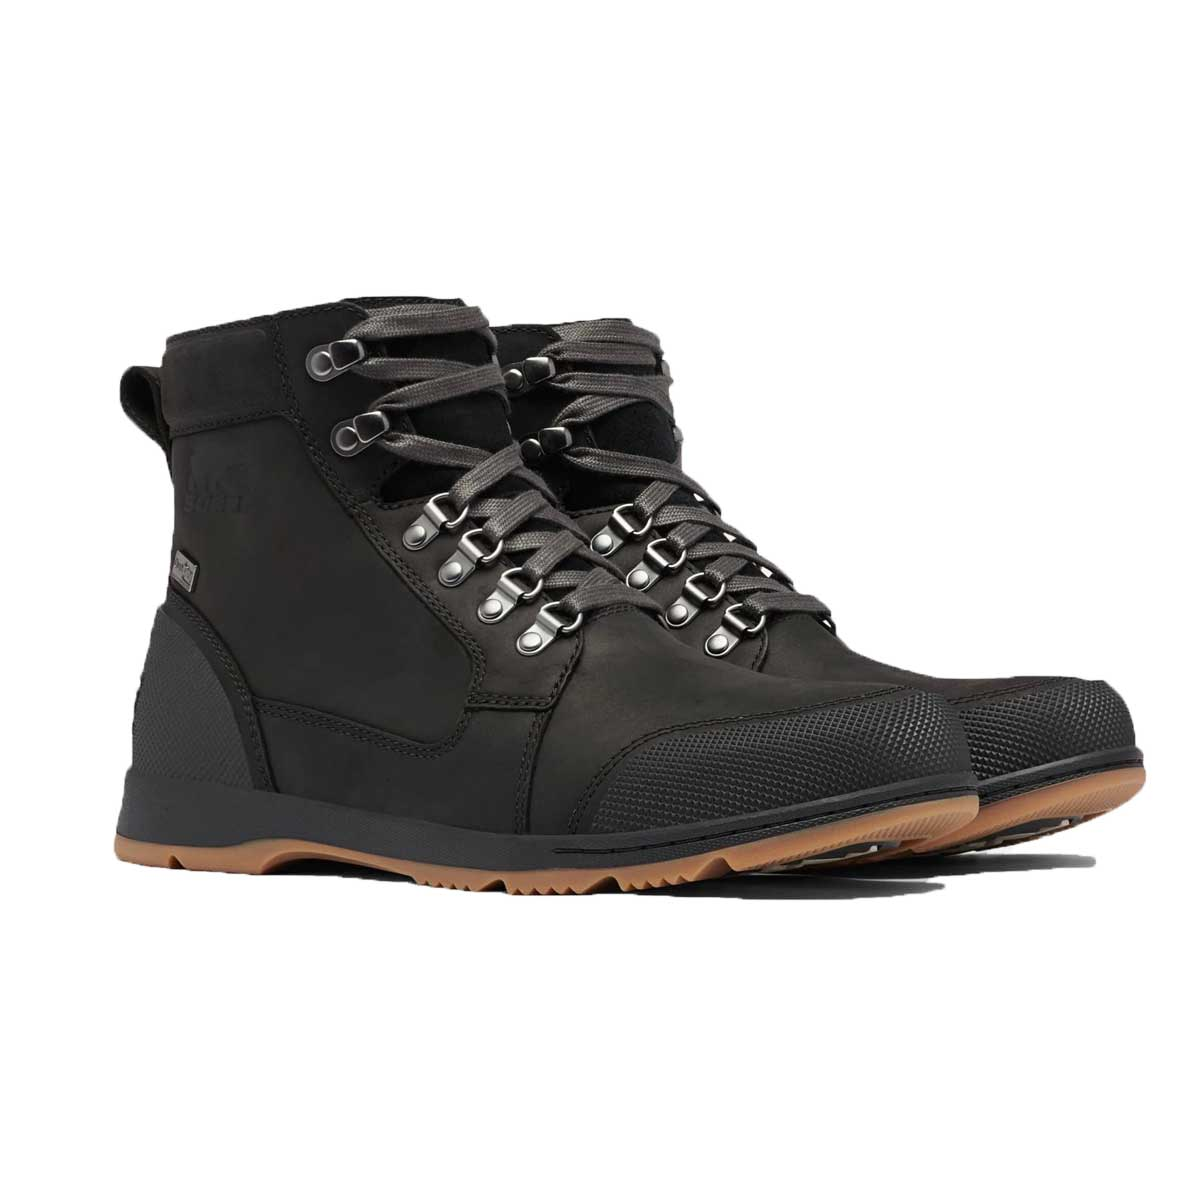 Sorel Ankeny II Mid OD Boot - Men's